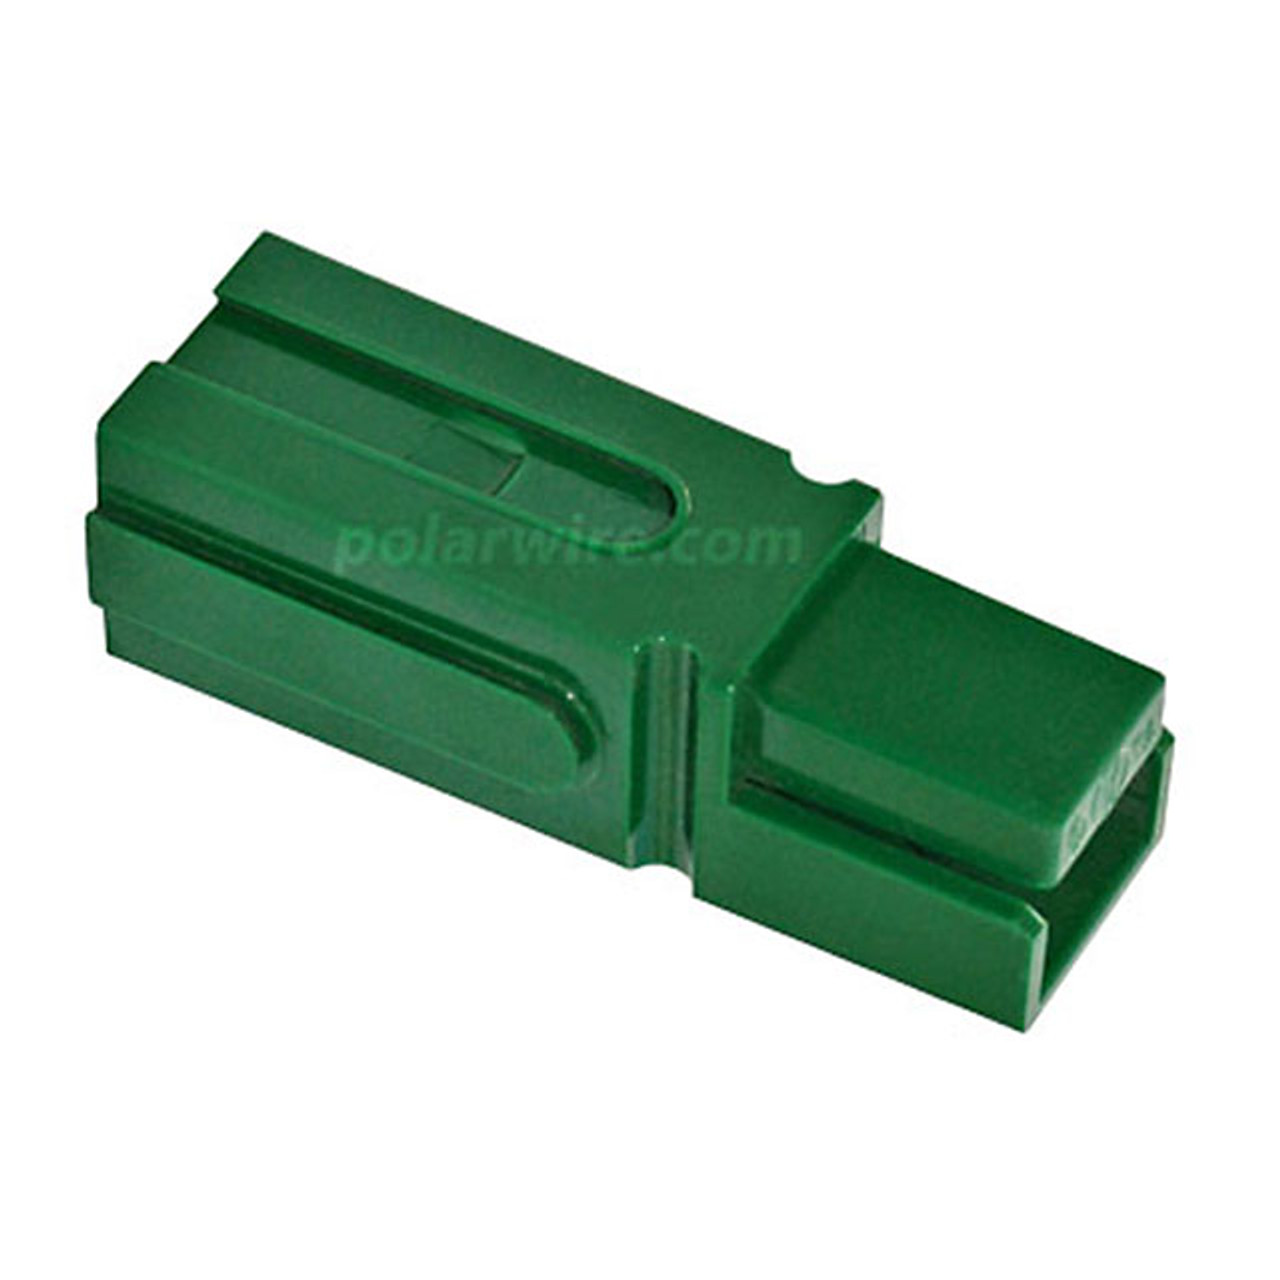 120AMP HOUSING GREEN POWER POLE